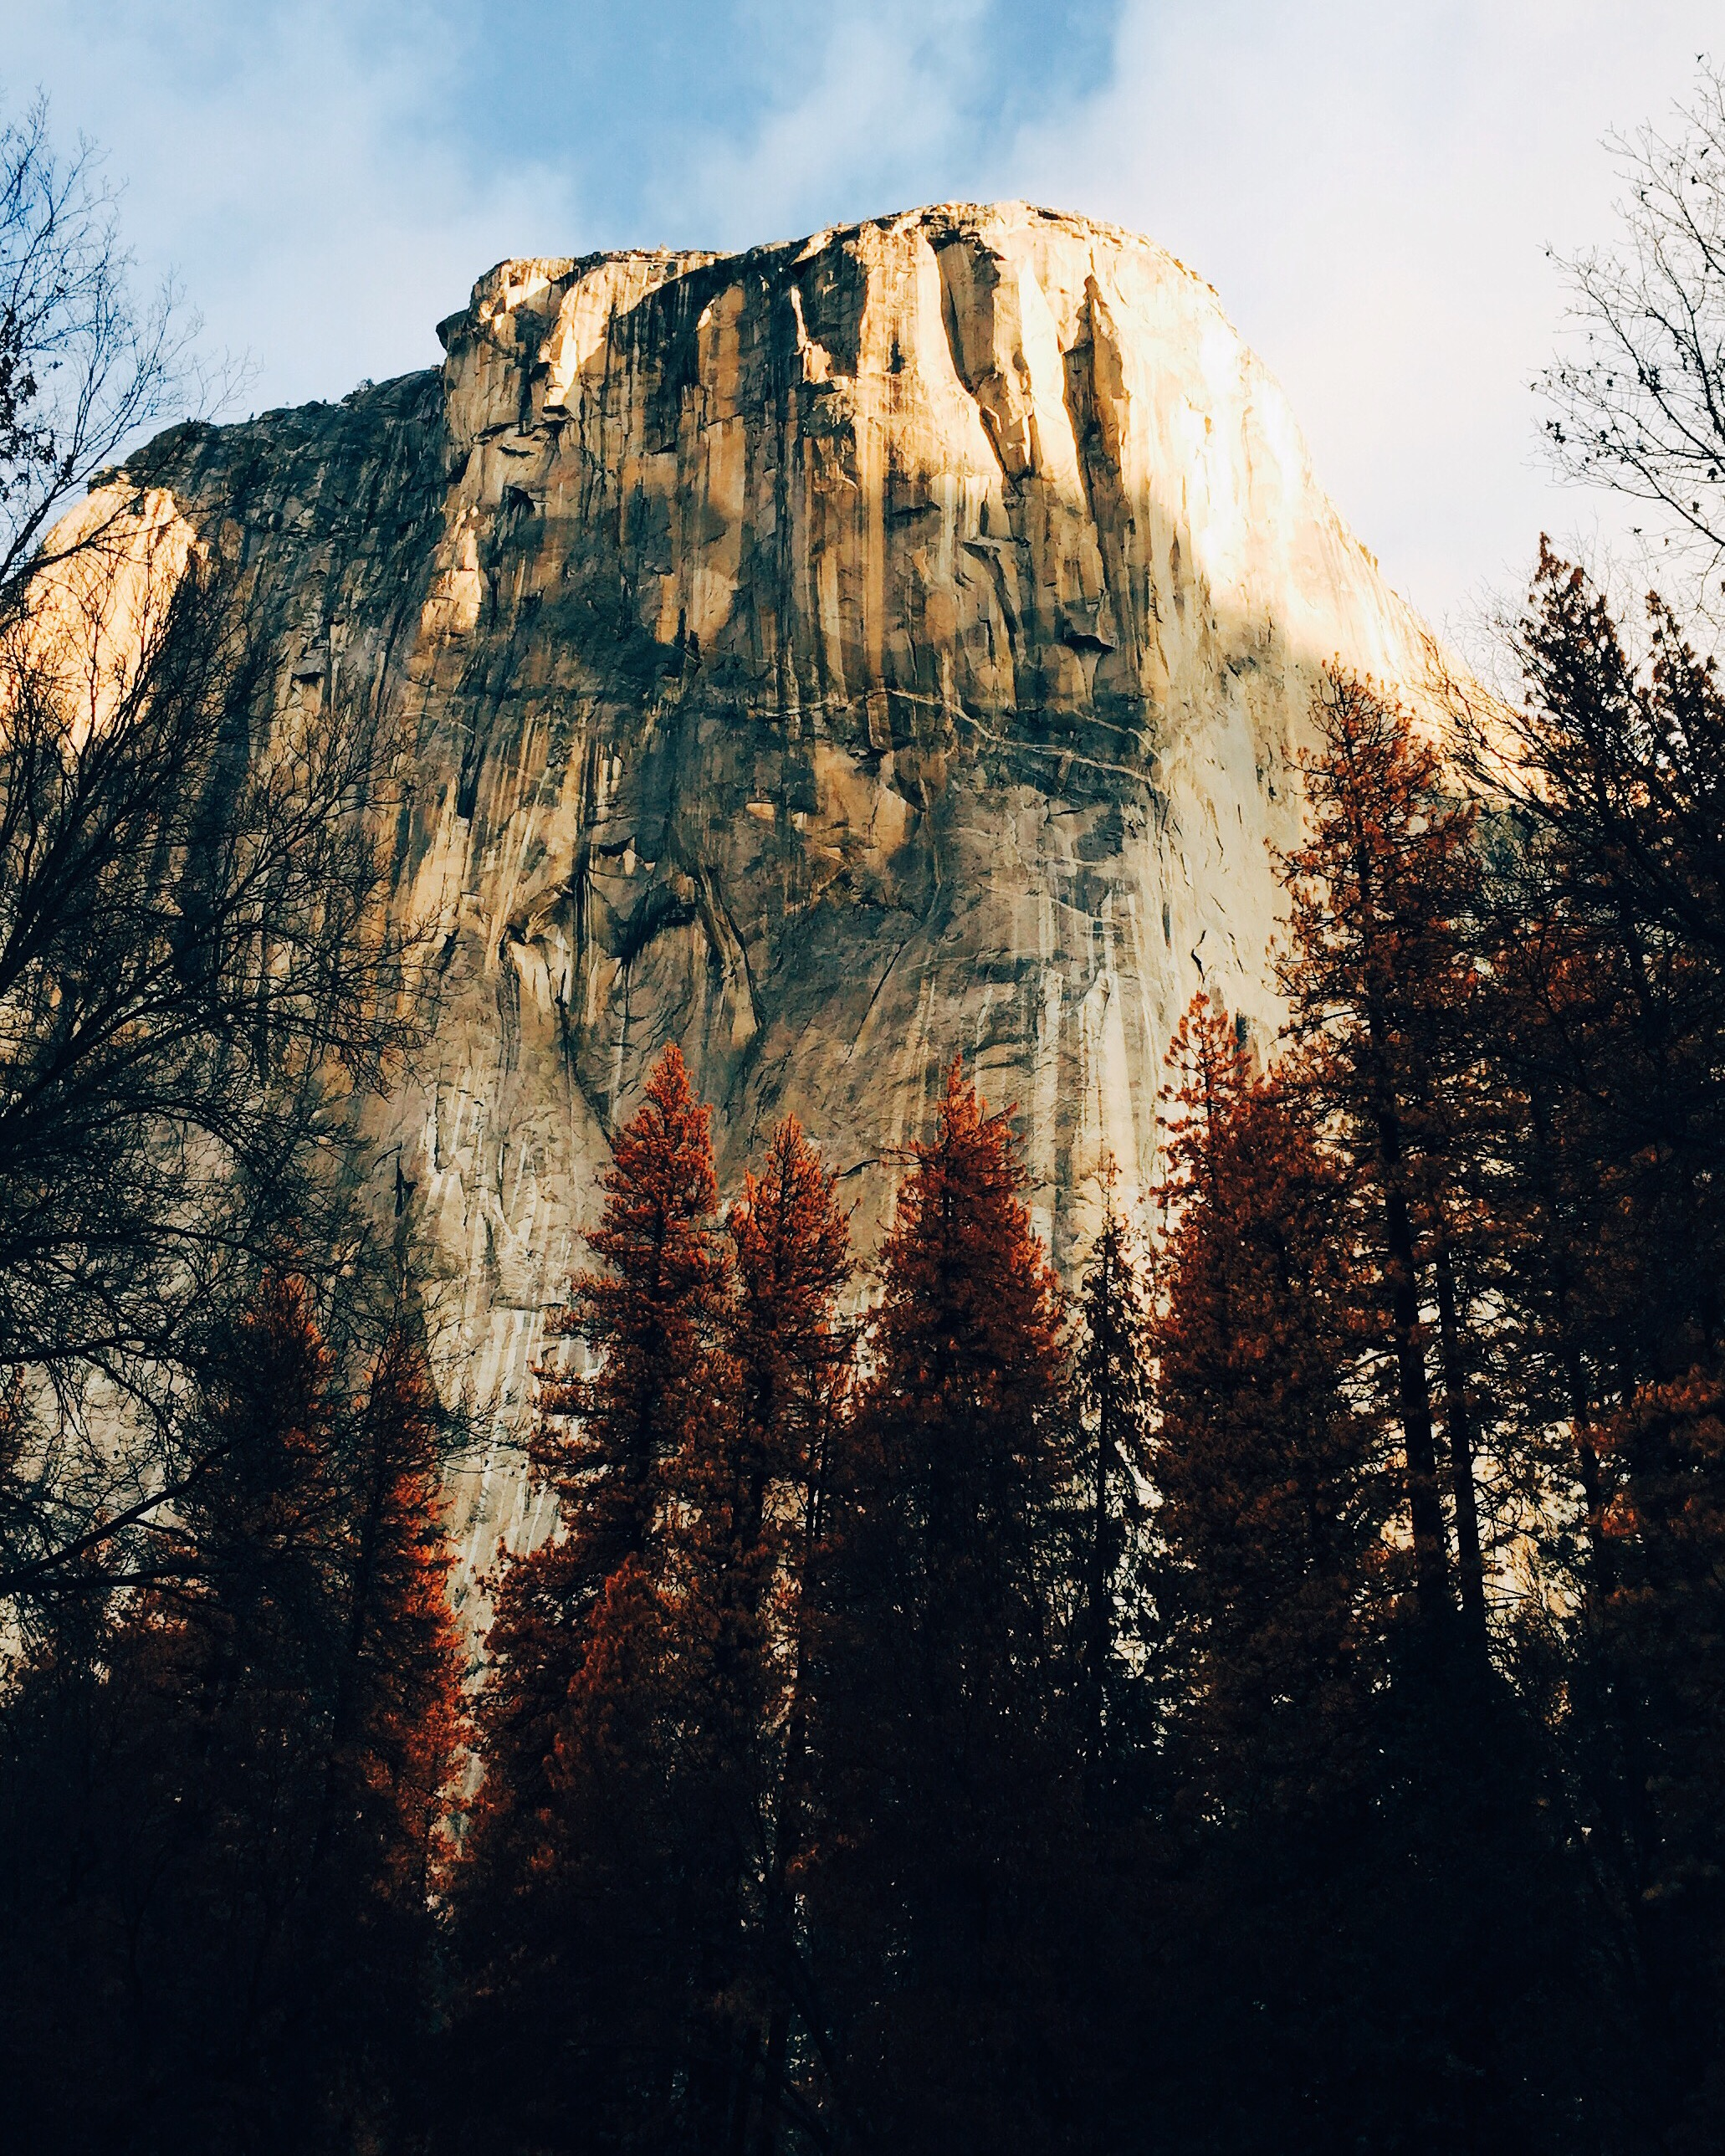 El Capitan, photographed by my daughter Colly Smith, as we left the park yesterday morning.